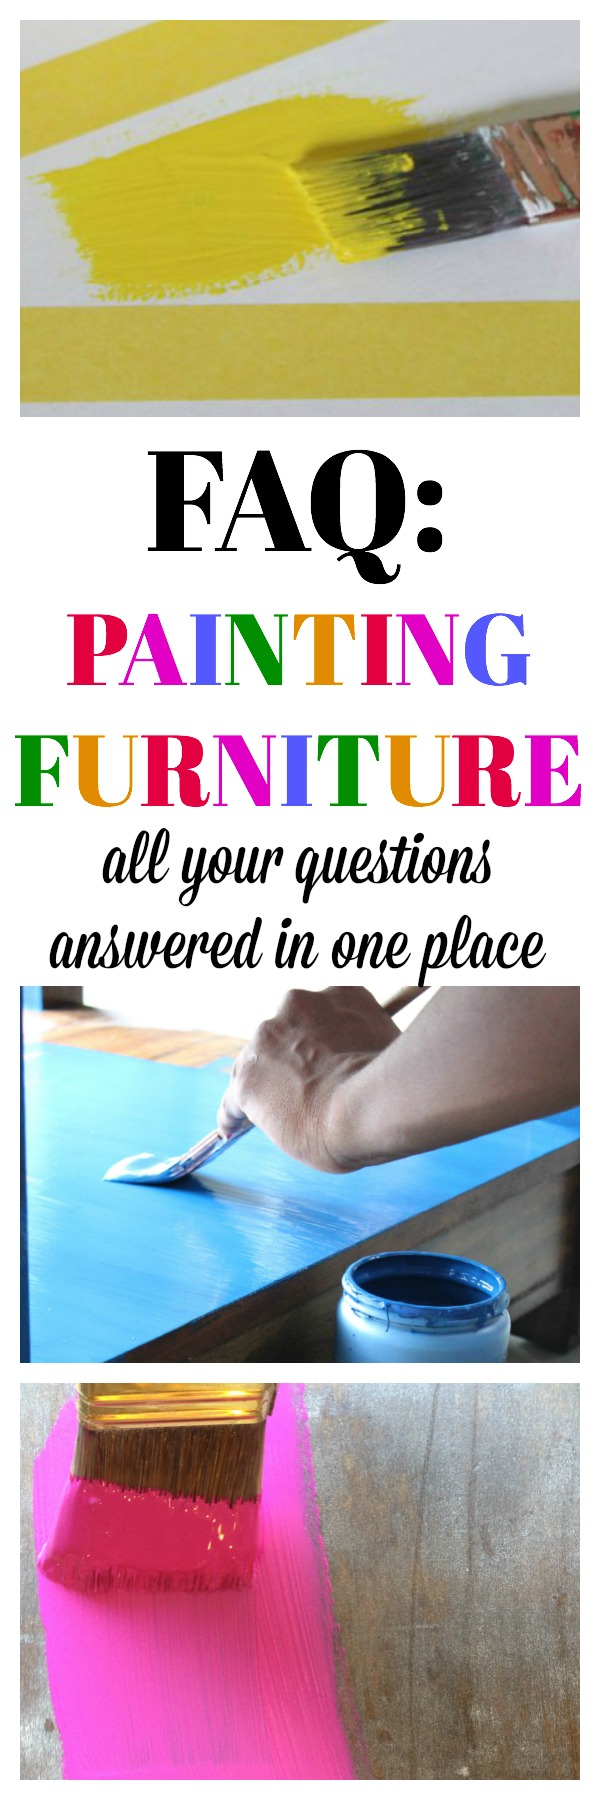 All your questions about painting furniture answered in one place. Great guide for beginners and a great reference for more experienced furniture painters.